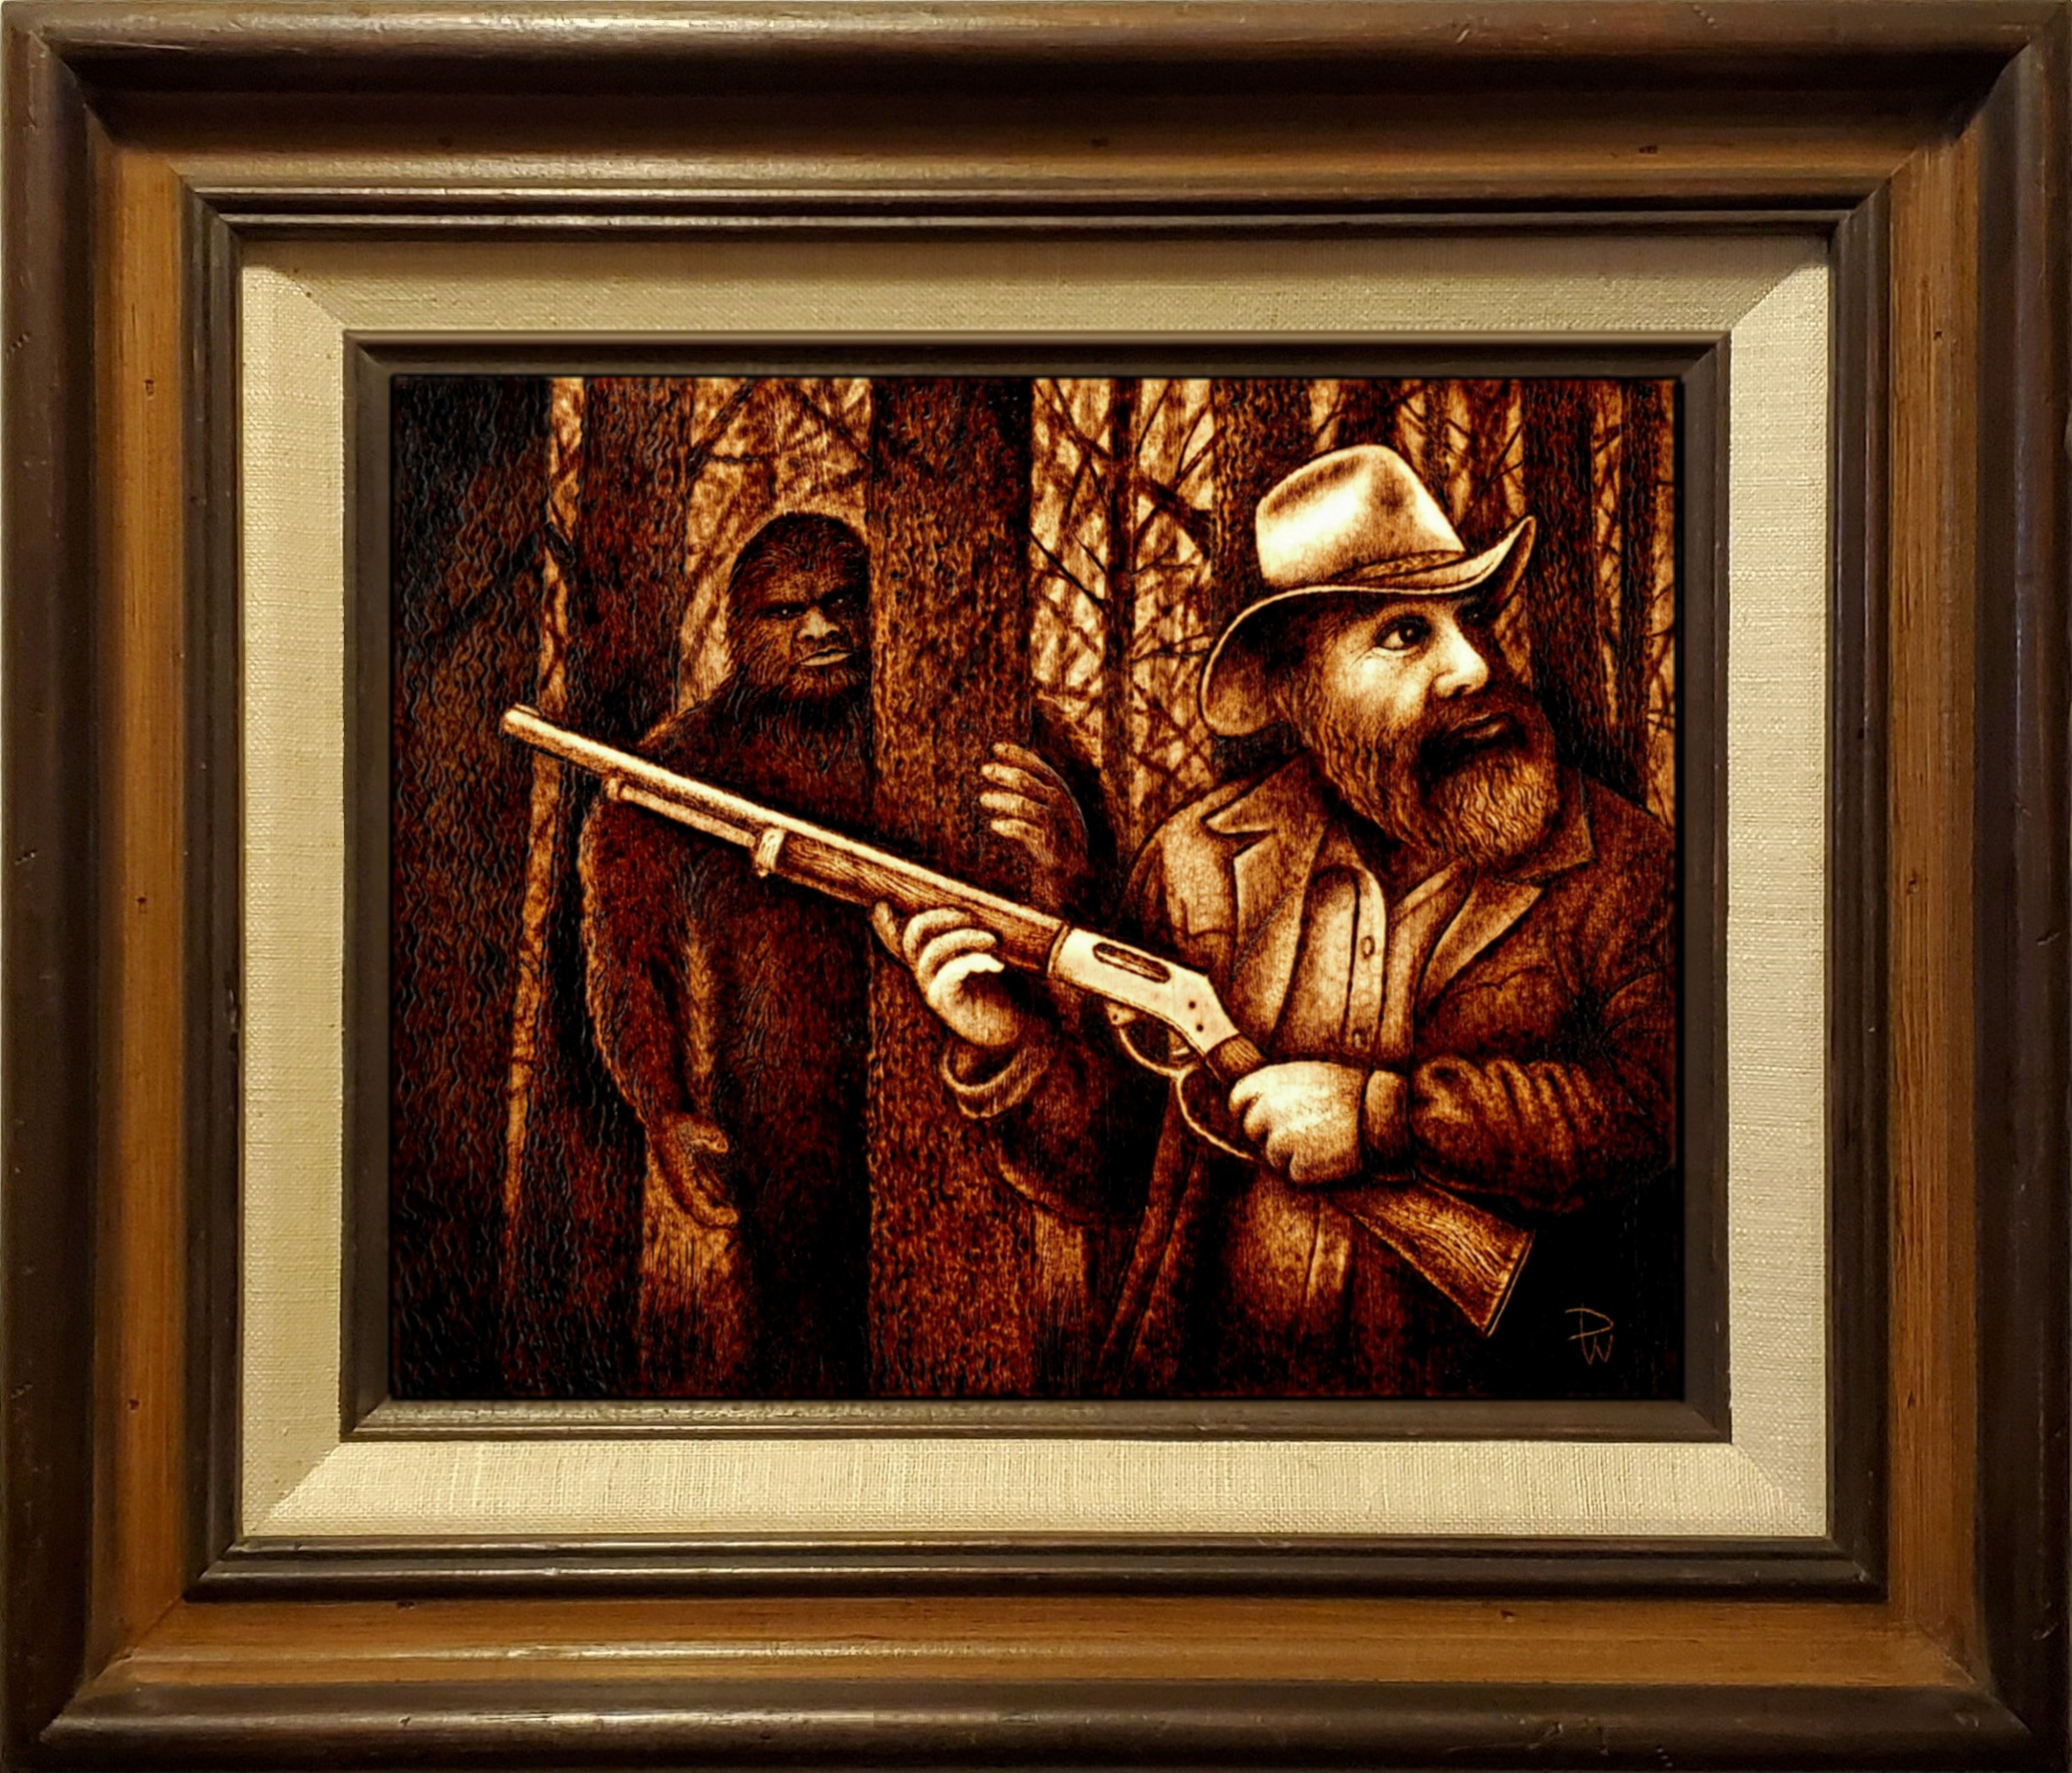 Pyrographic image of a hunter being stalked by sasquatch bigfoot creature